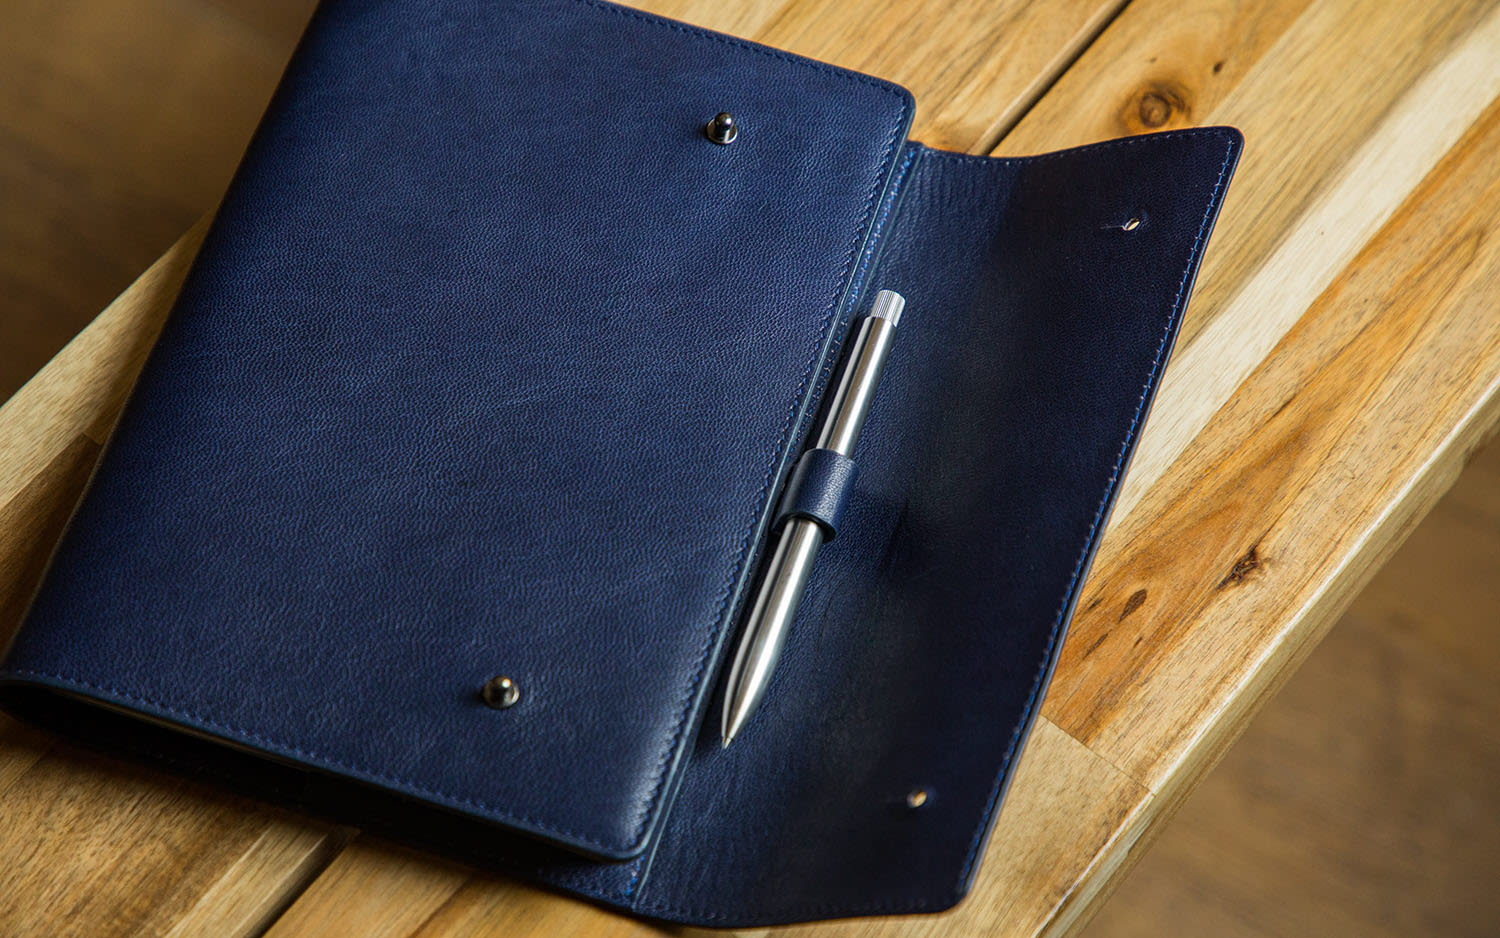 A blue leather notebook